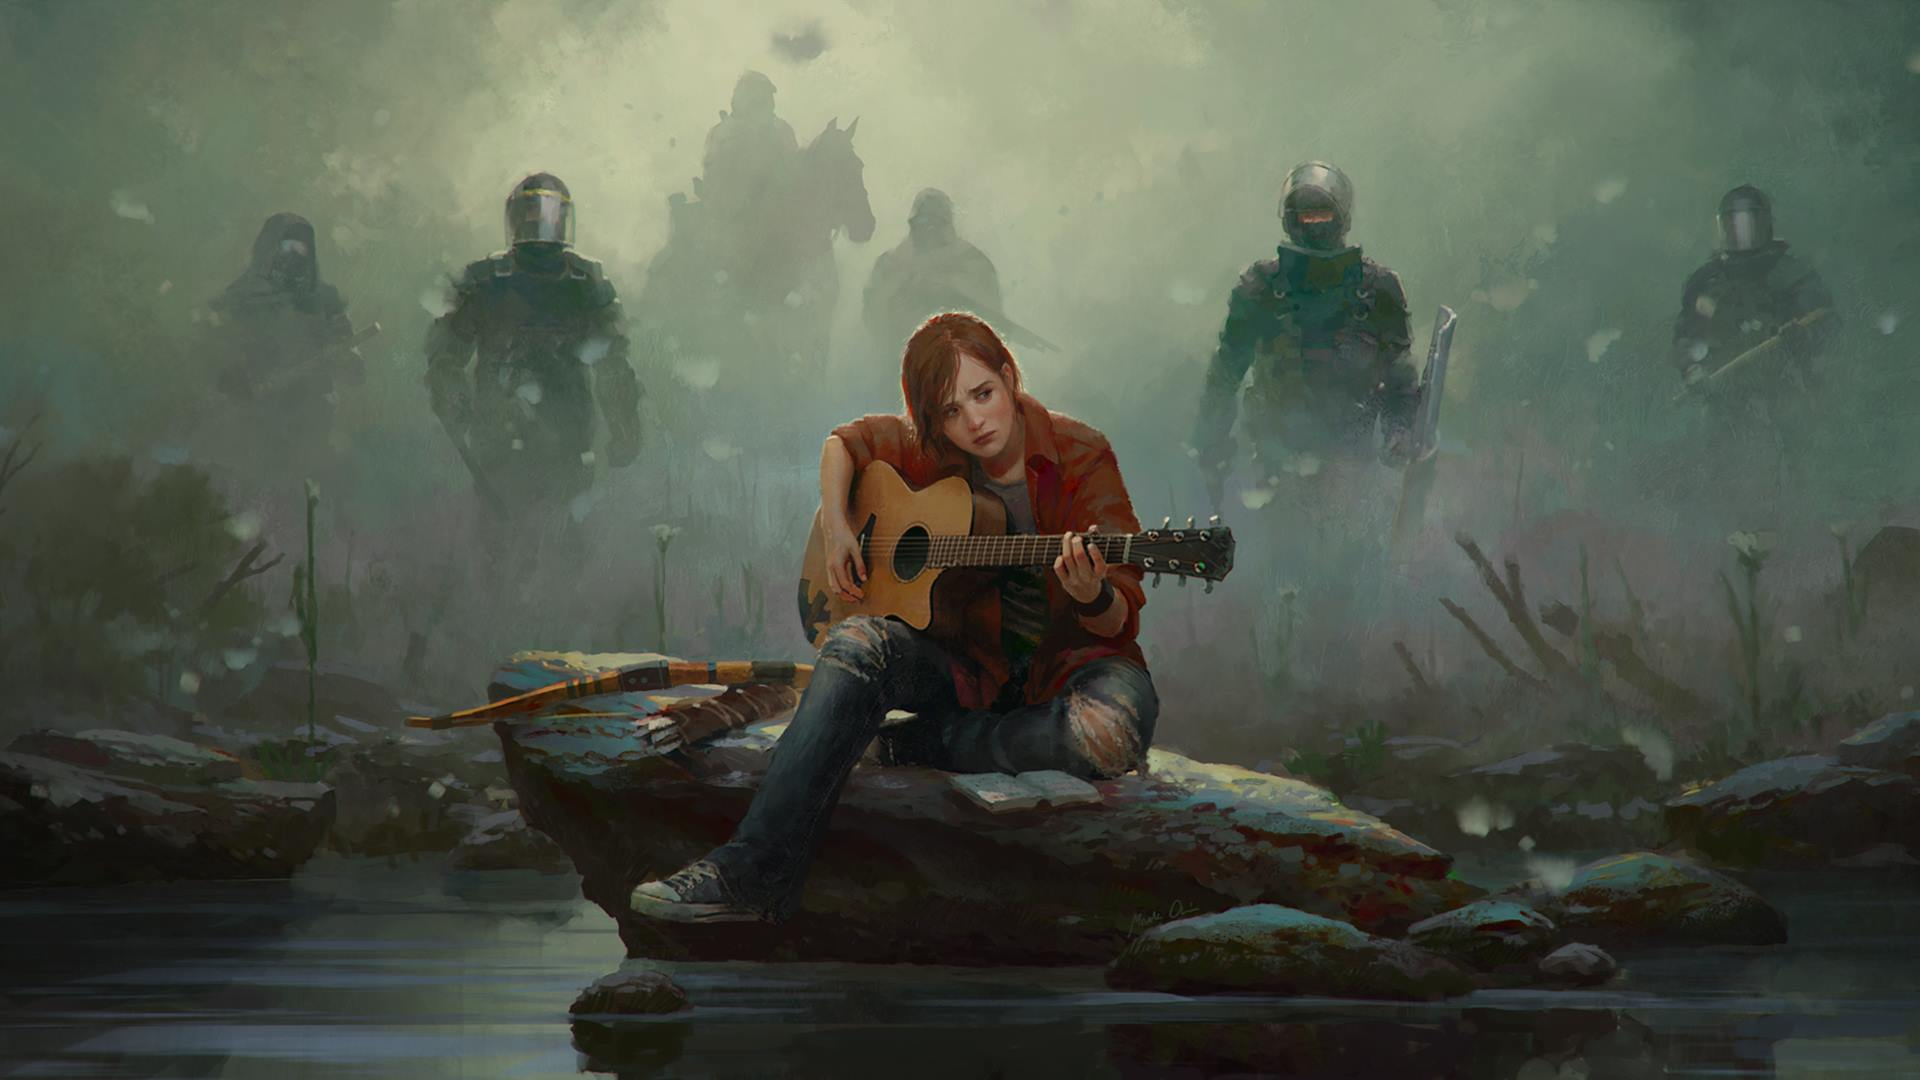 The_Last_of_Us_2_PS4_Ellie_Fan_Art.jpg